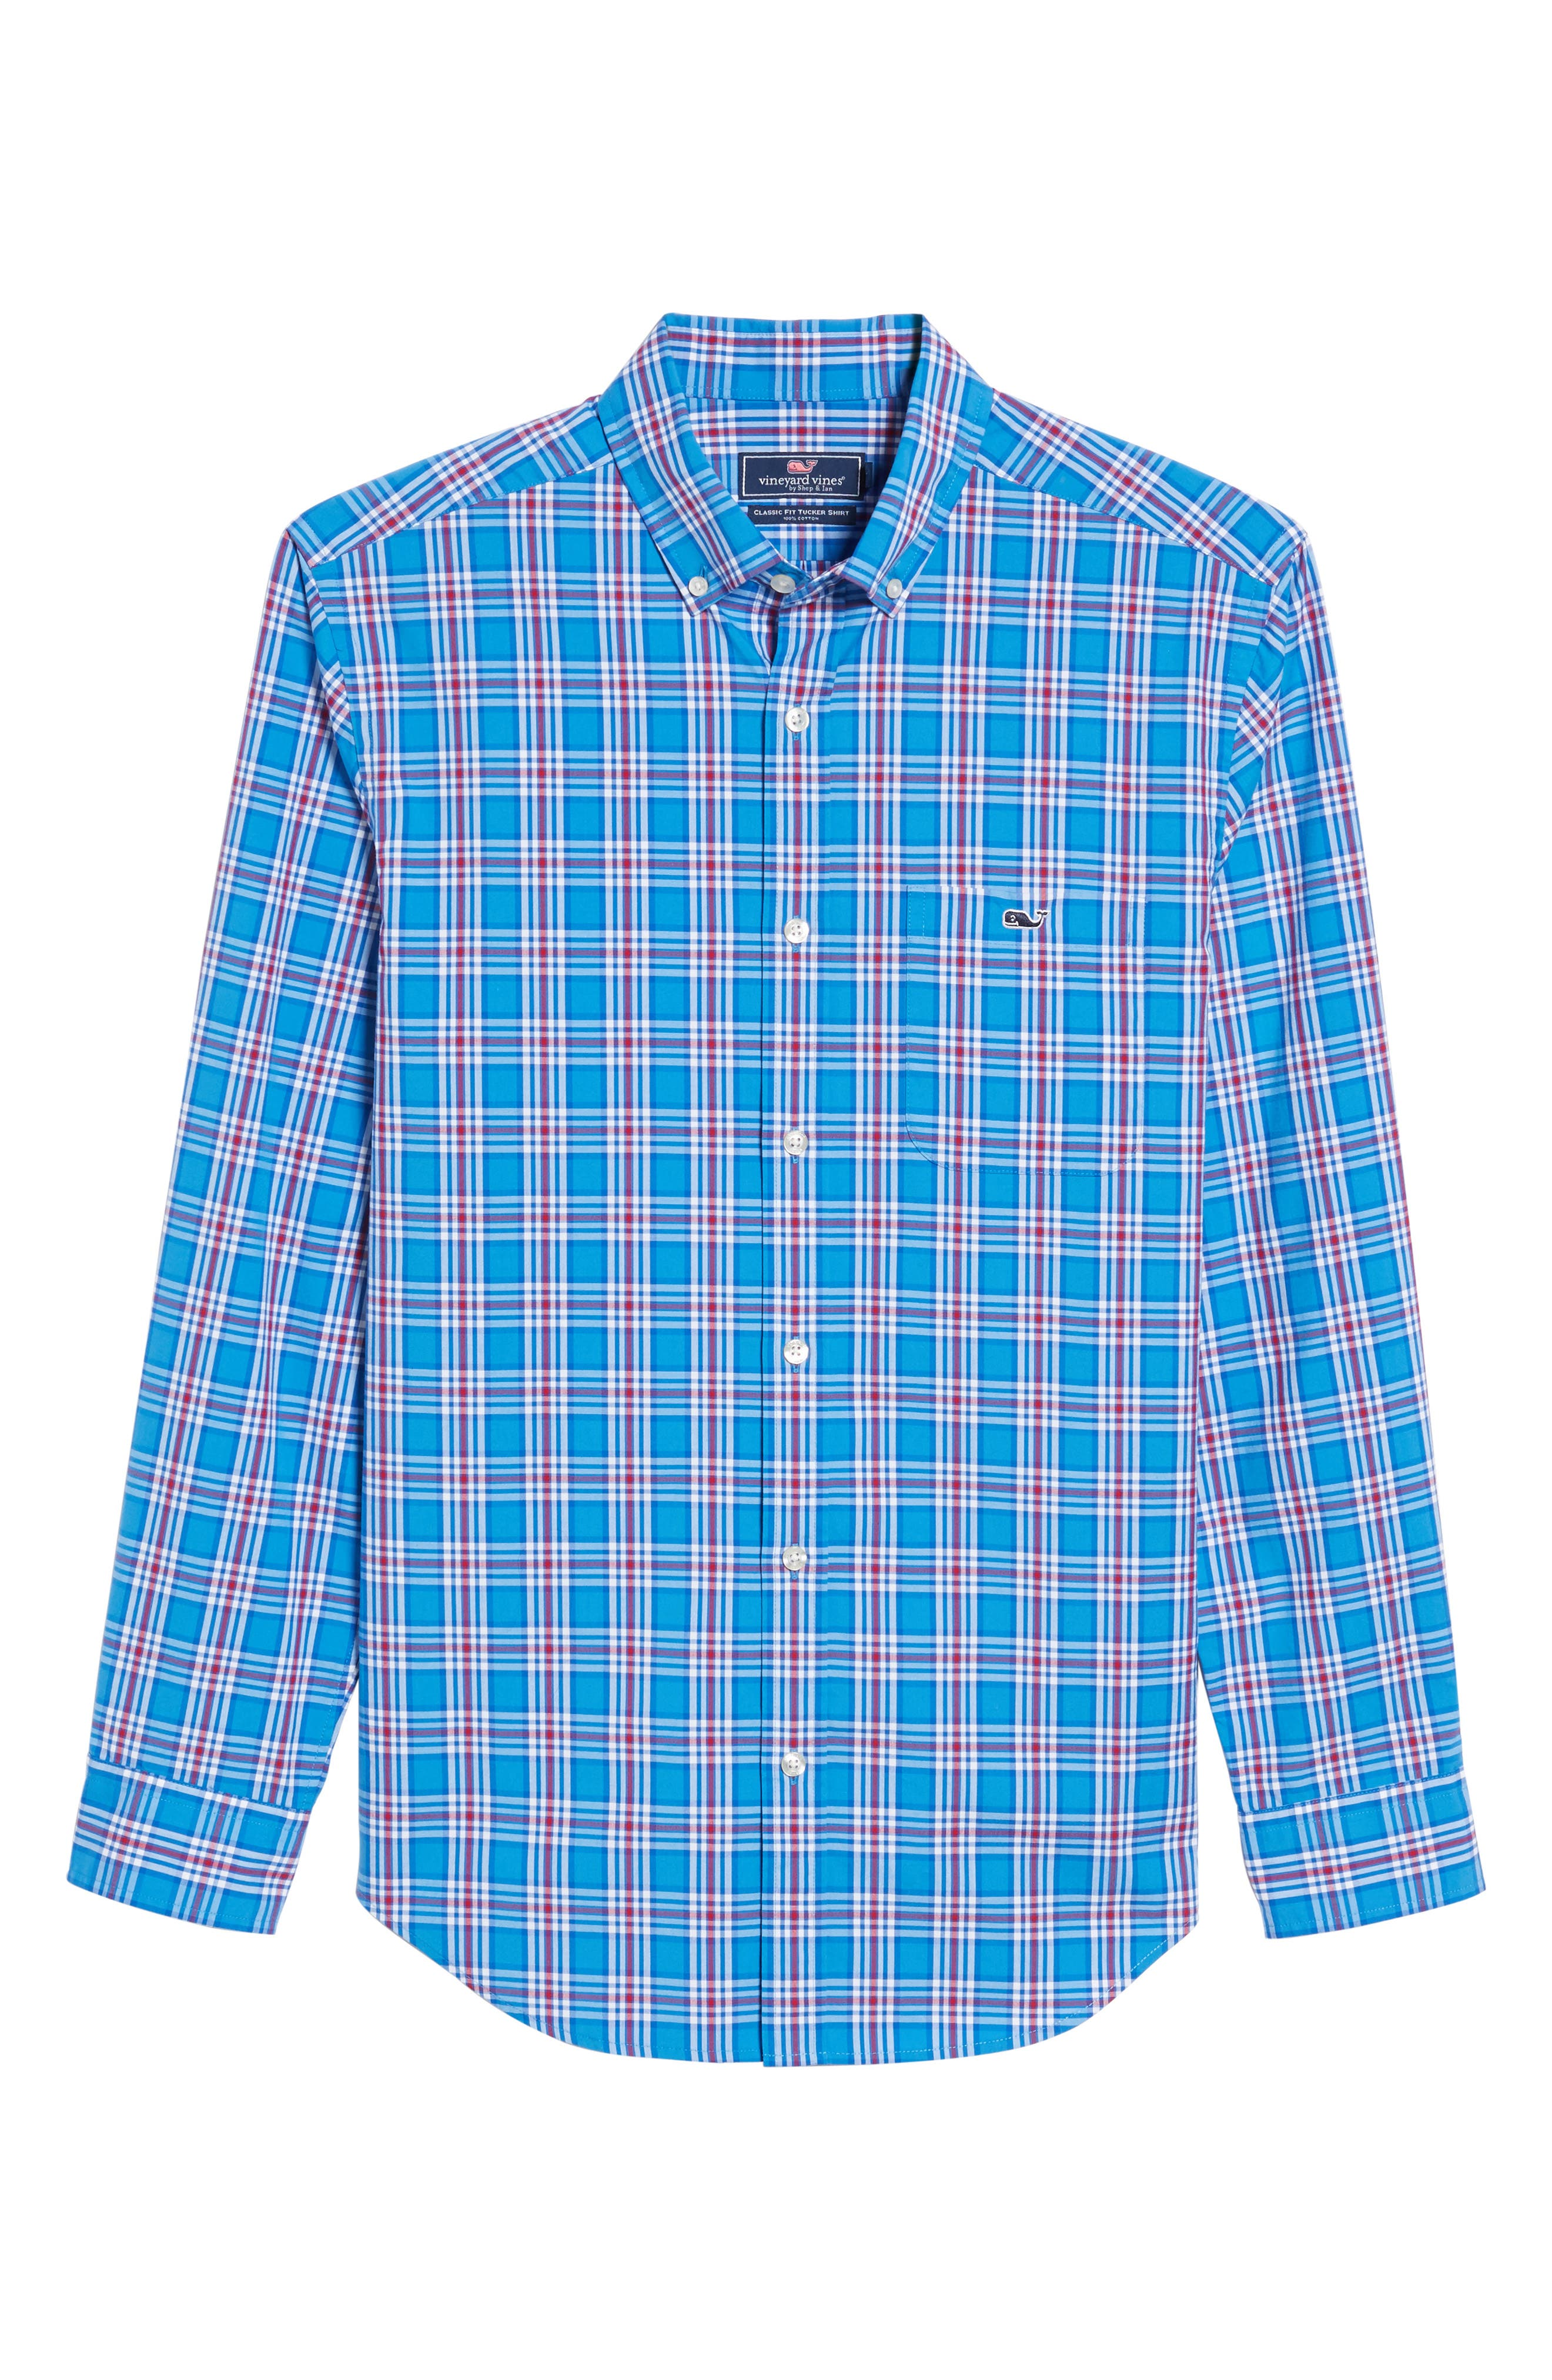 Tucker Chandler Pond Classic Fit Plaid Sport Shirt,                             Alternate thumbnail 6, color,                             Hull Blue